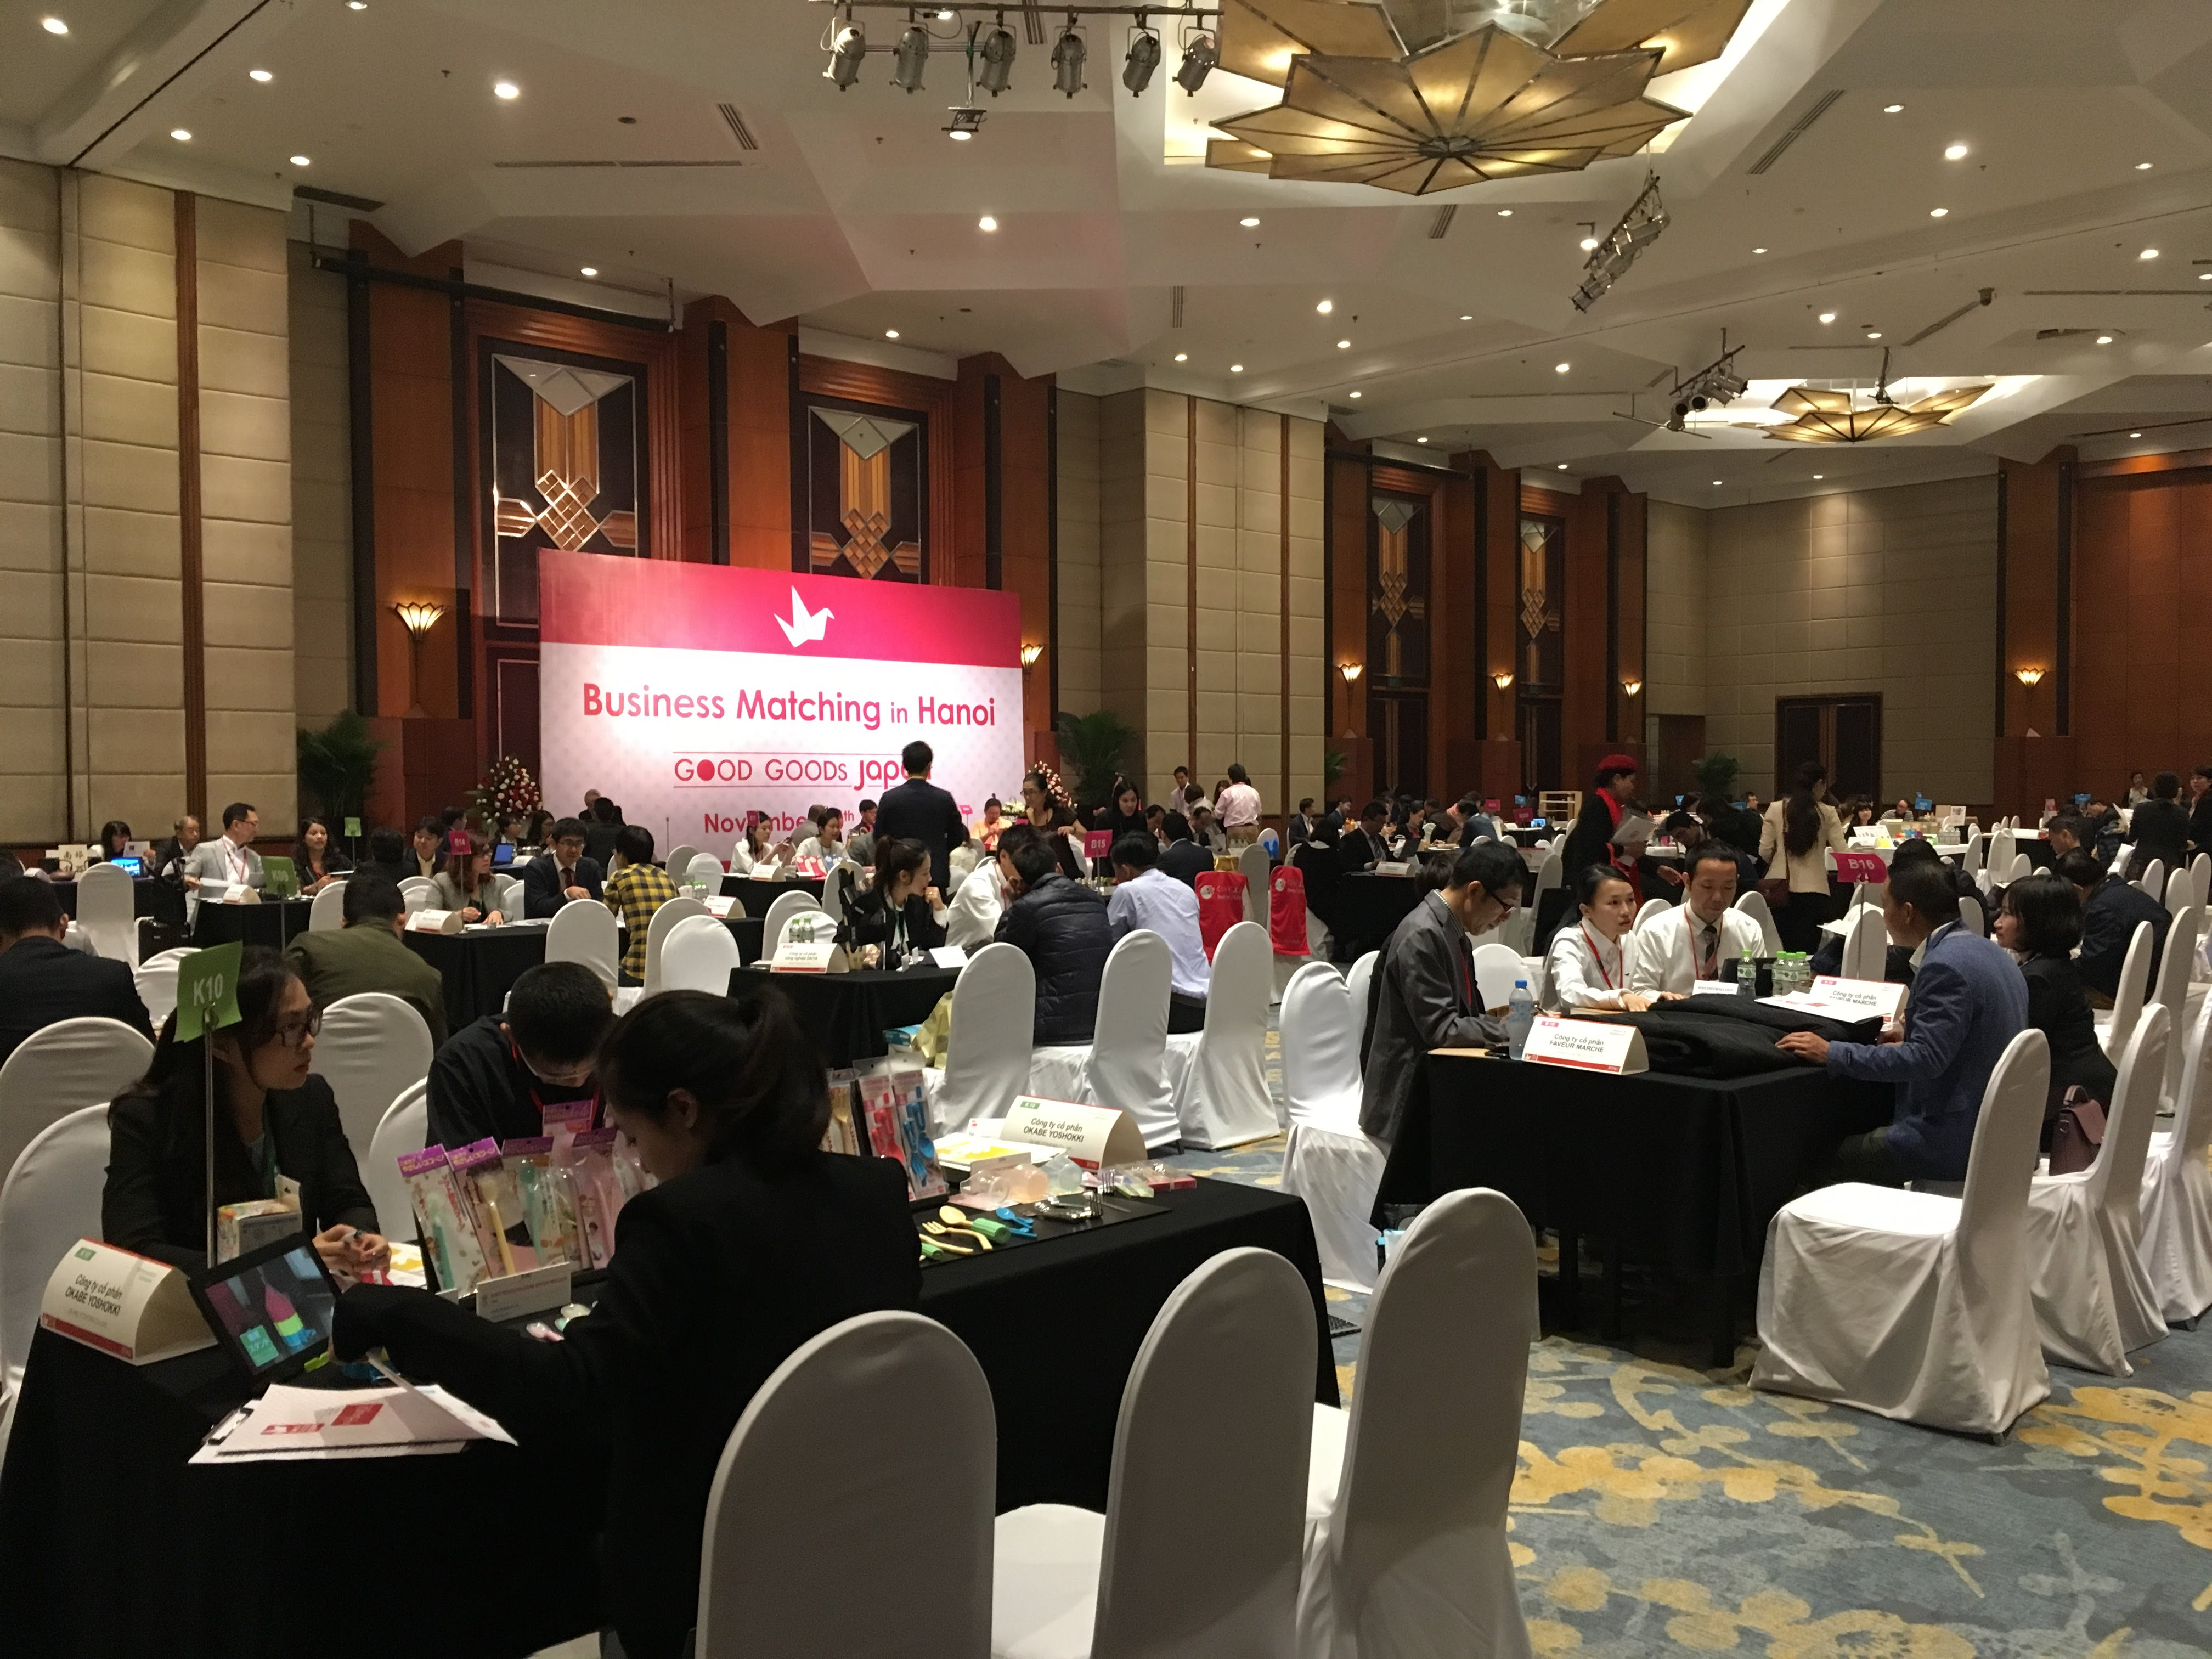 48 Japanese firms to join 'Good Goods Japan' in Vietnam